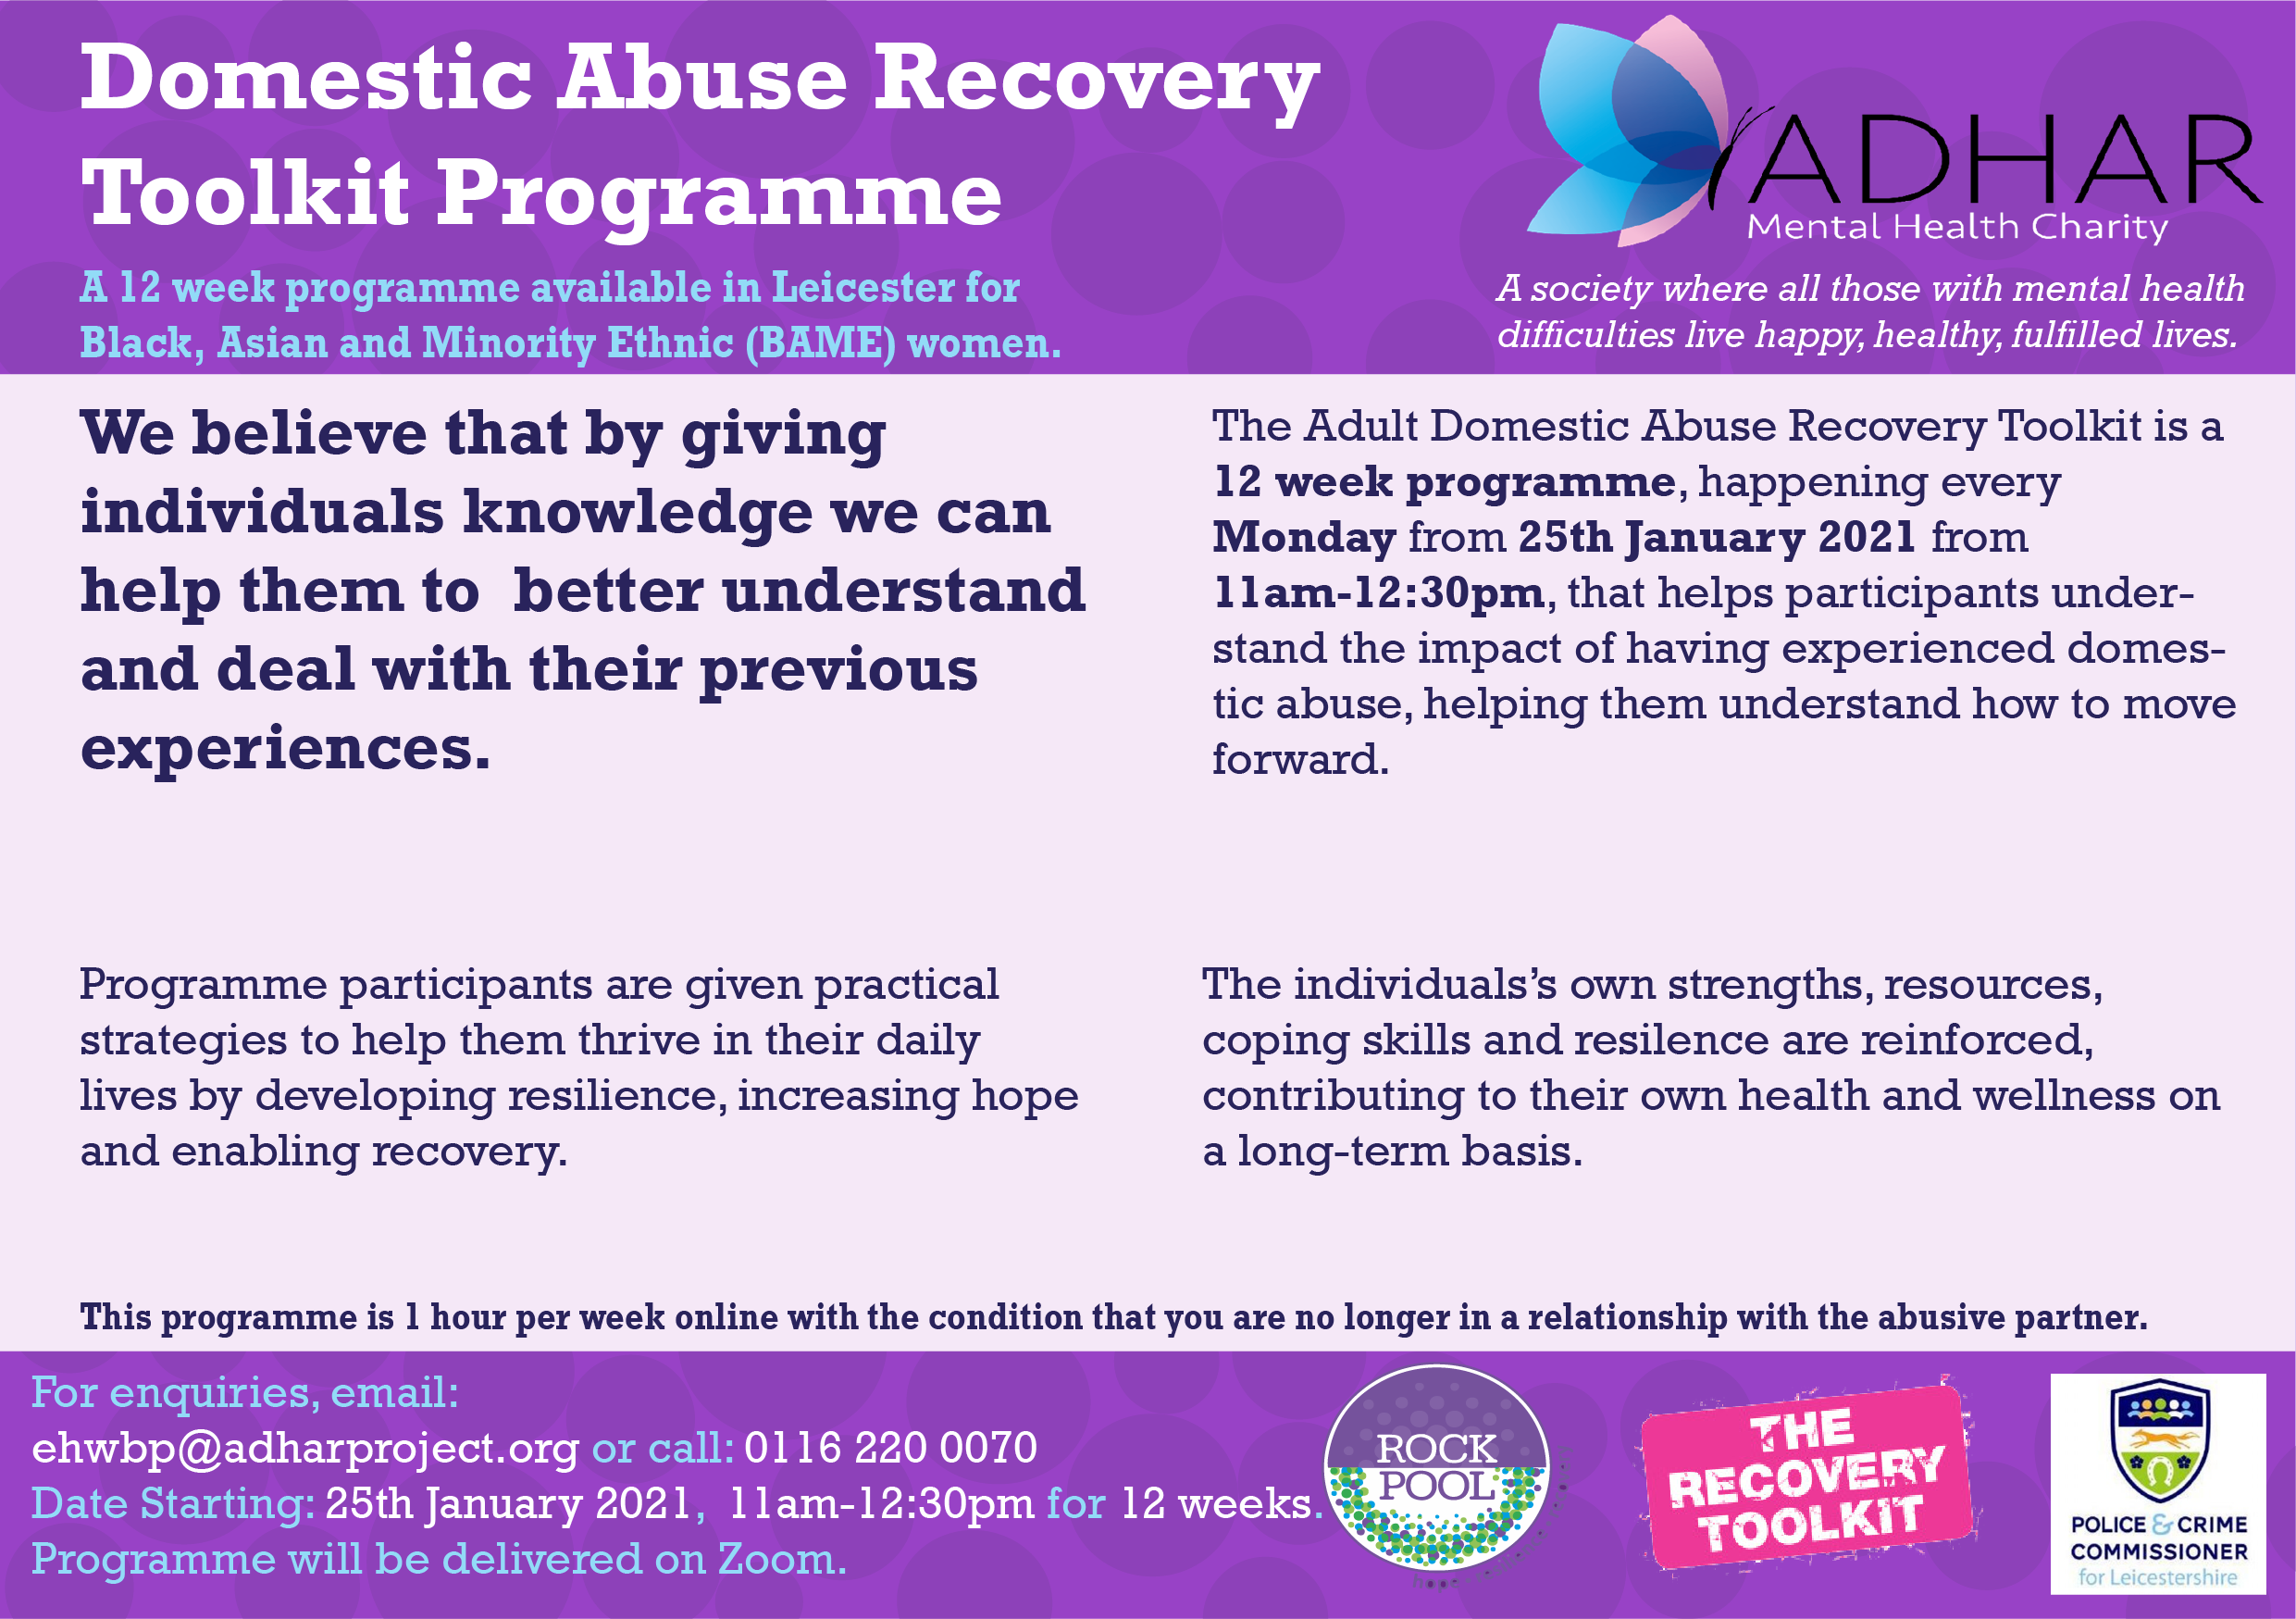 In January, Start Your Domestic Abuse Recovery with Adhar